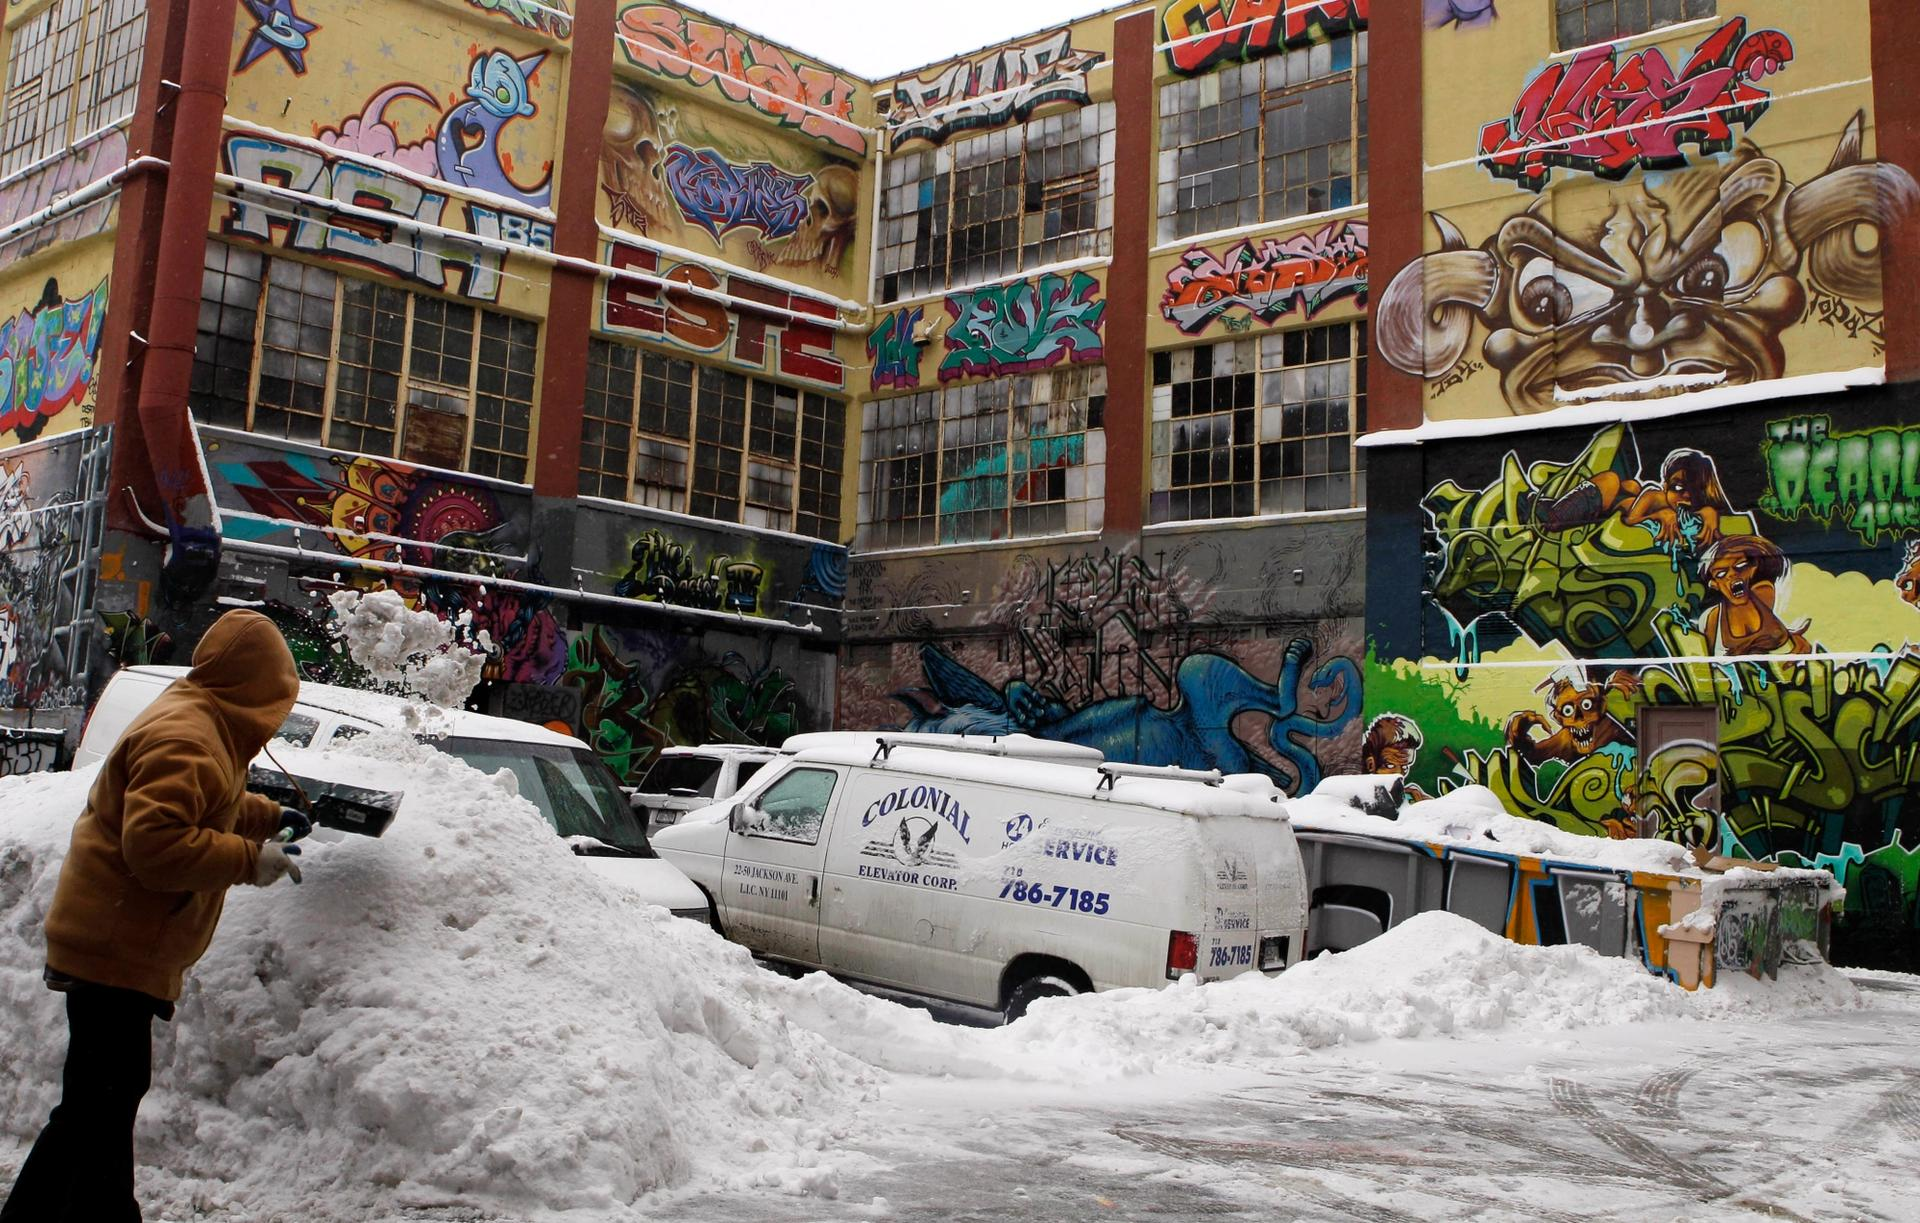 A man shovels snow to clear a driveway near the 5pointz street art complex before it was demolished AP Photo/Frank Franklin II